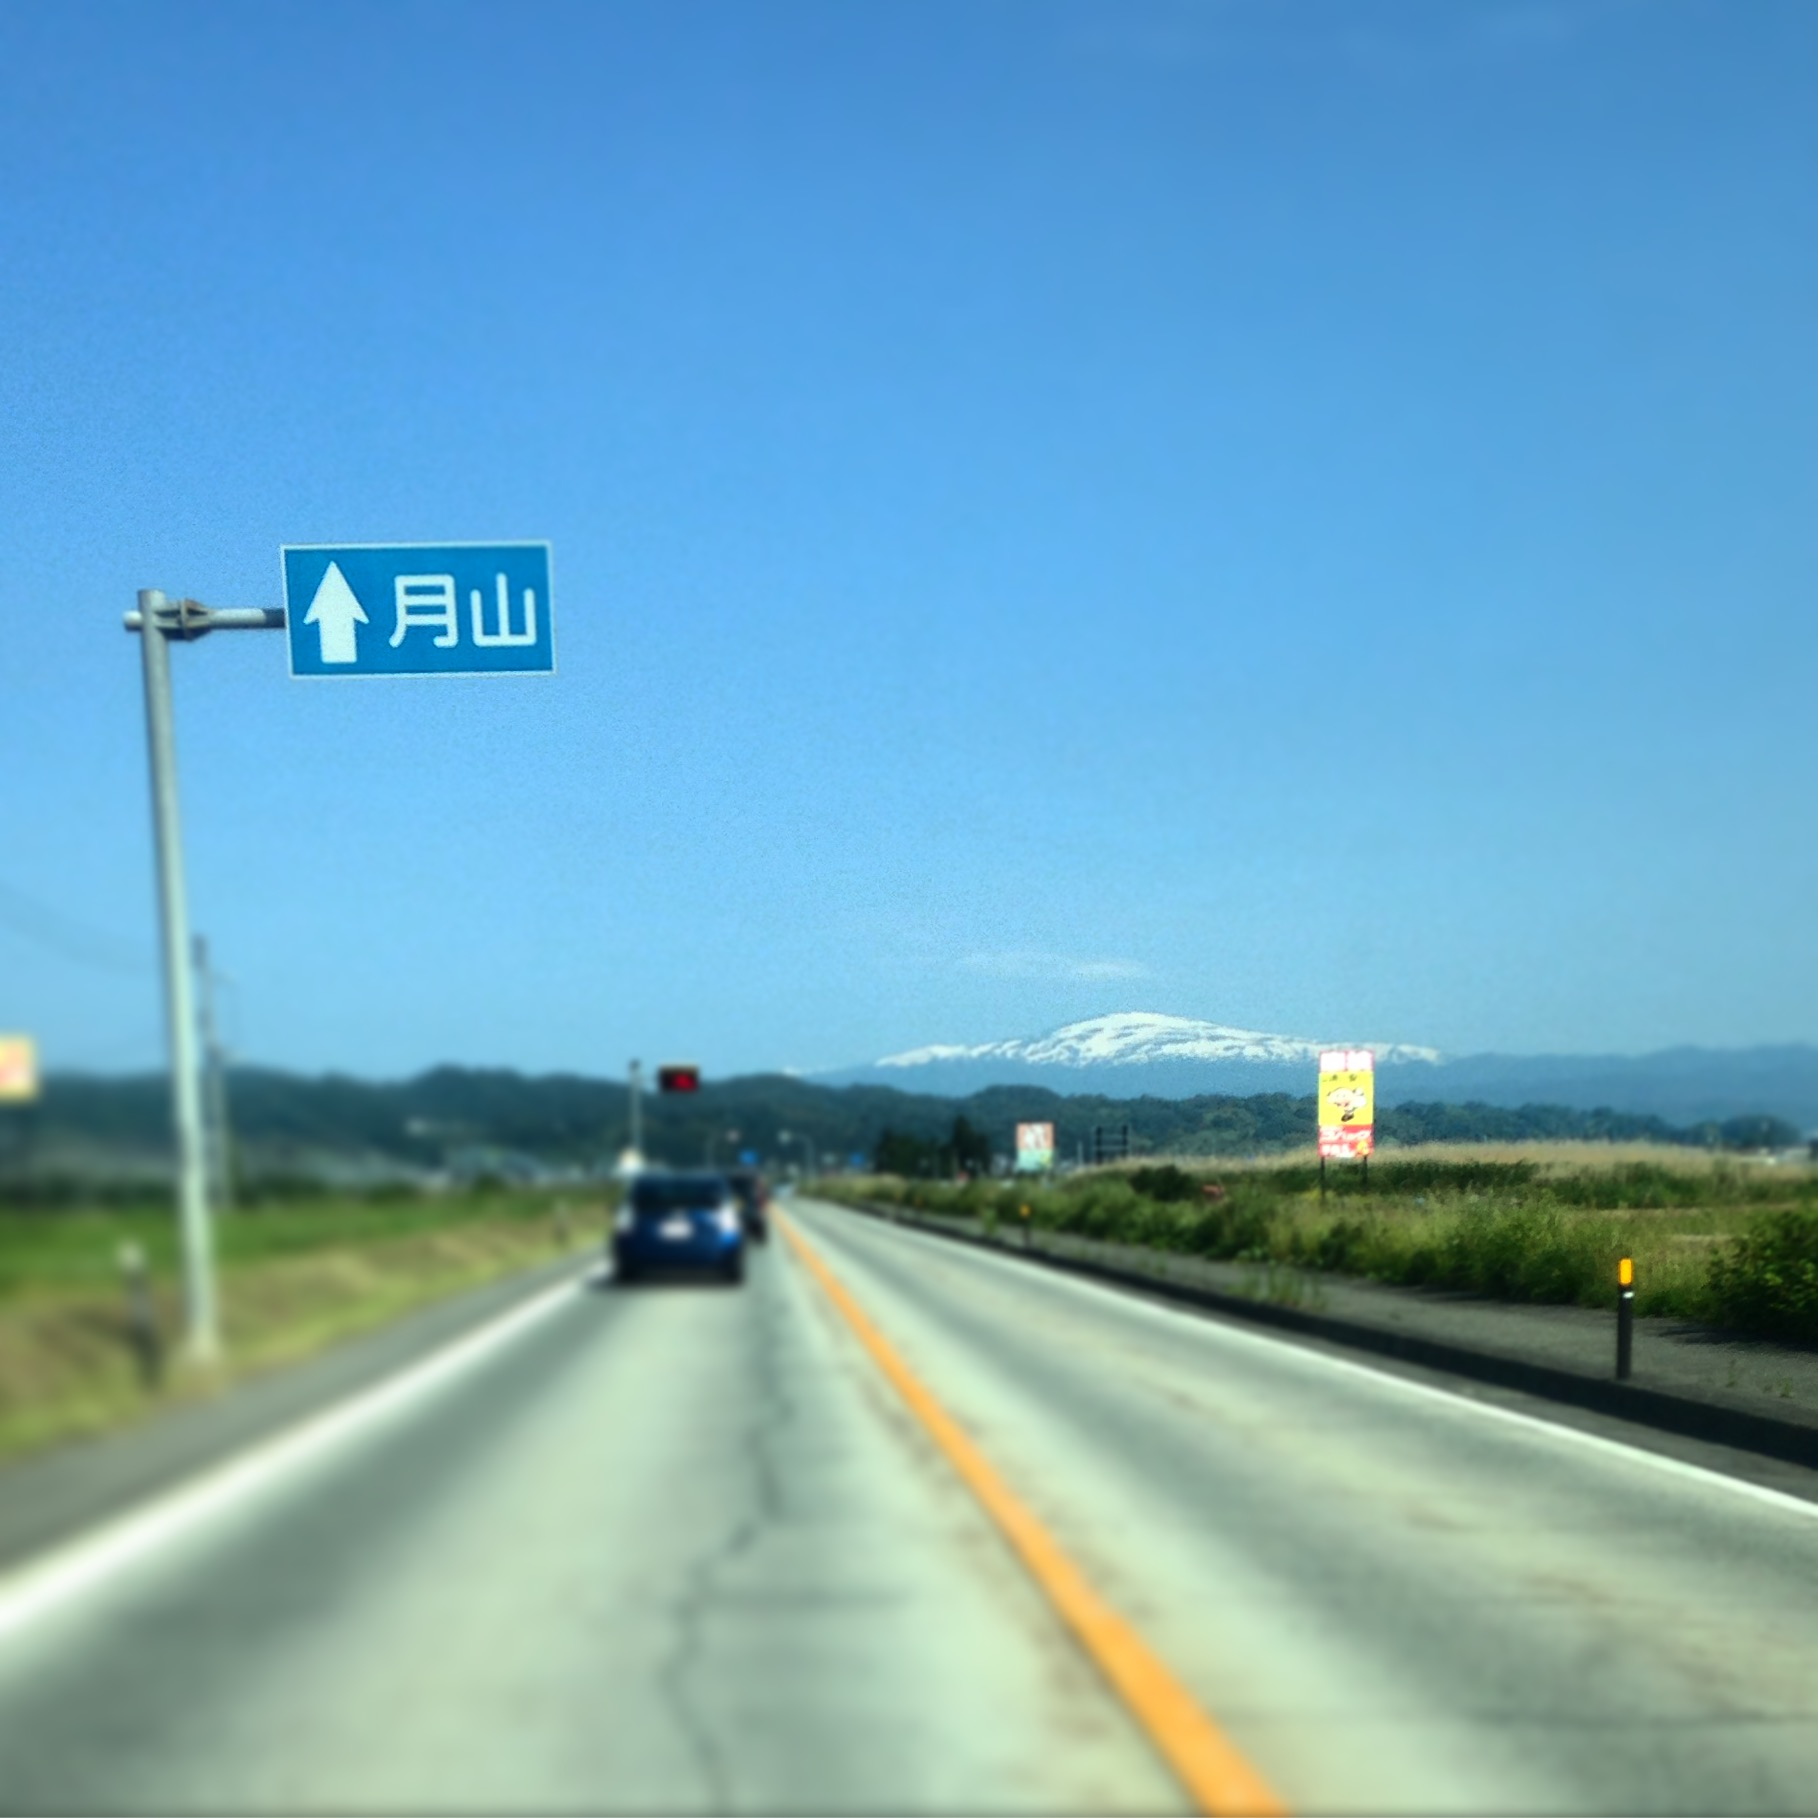 I love this road sign. Yep, I spotted the mountain, thanks.